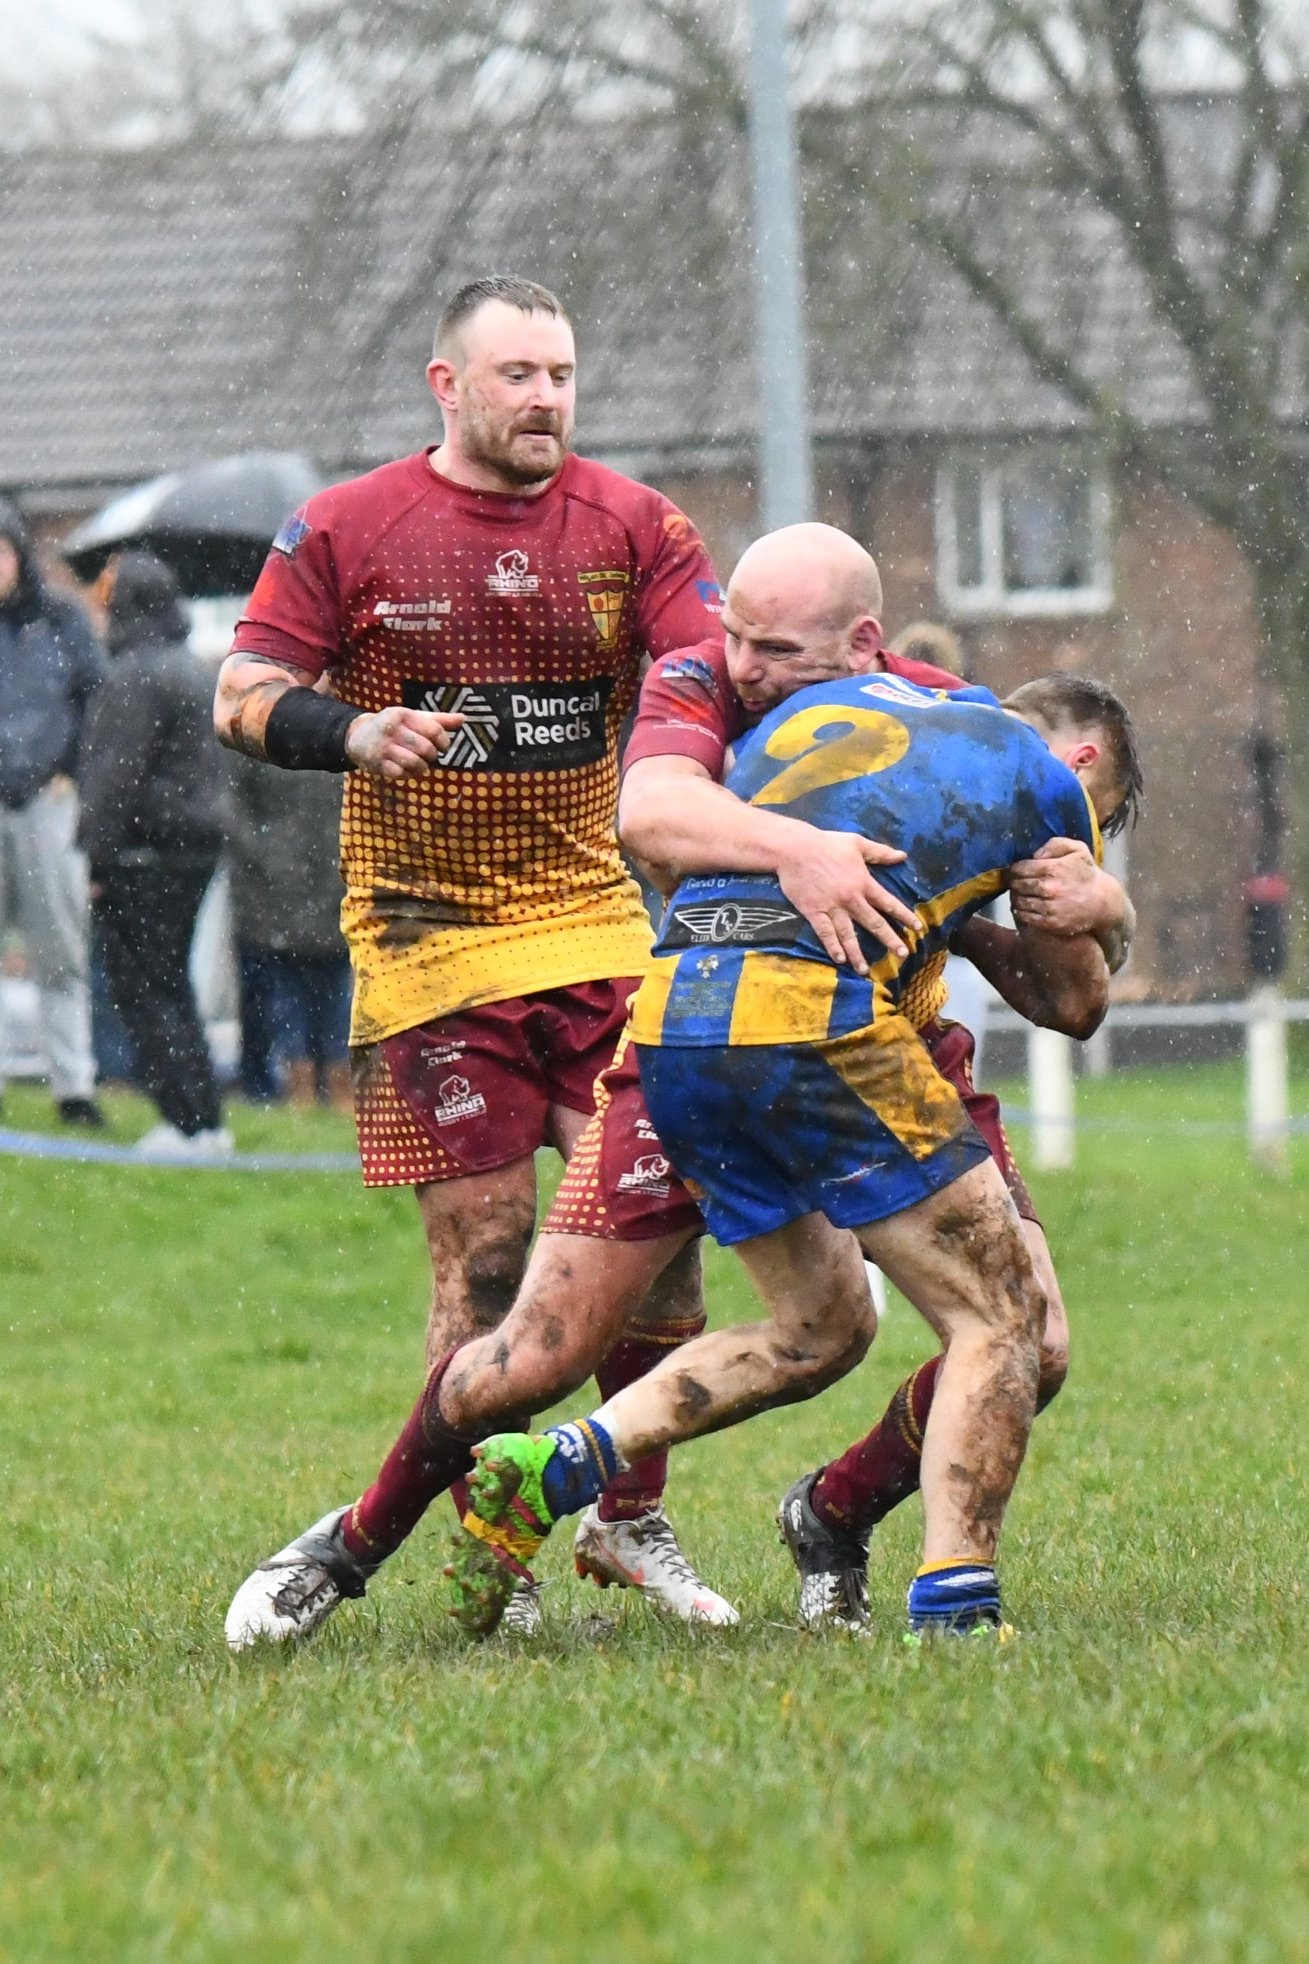 Match Reports - 14th & 15th March 2020